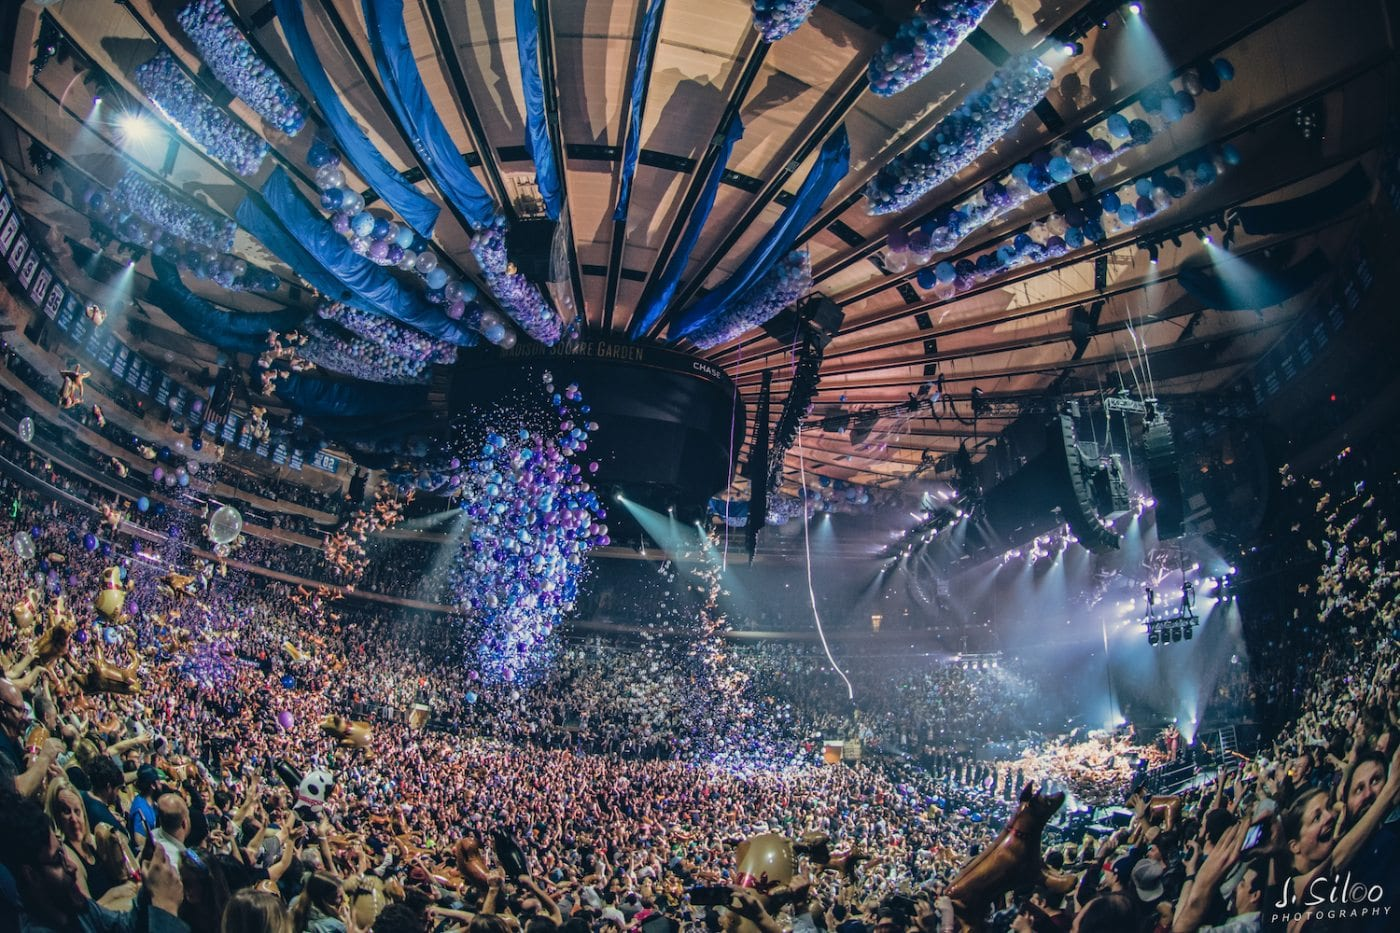 Vibrating With Love Light Phish Closes 2016 With Petrichor Rain Showers Madison Square